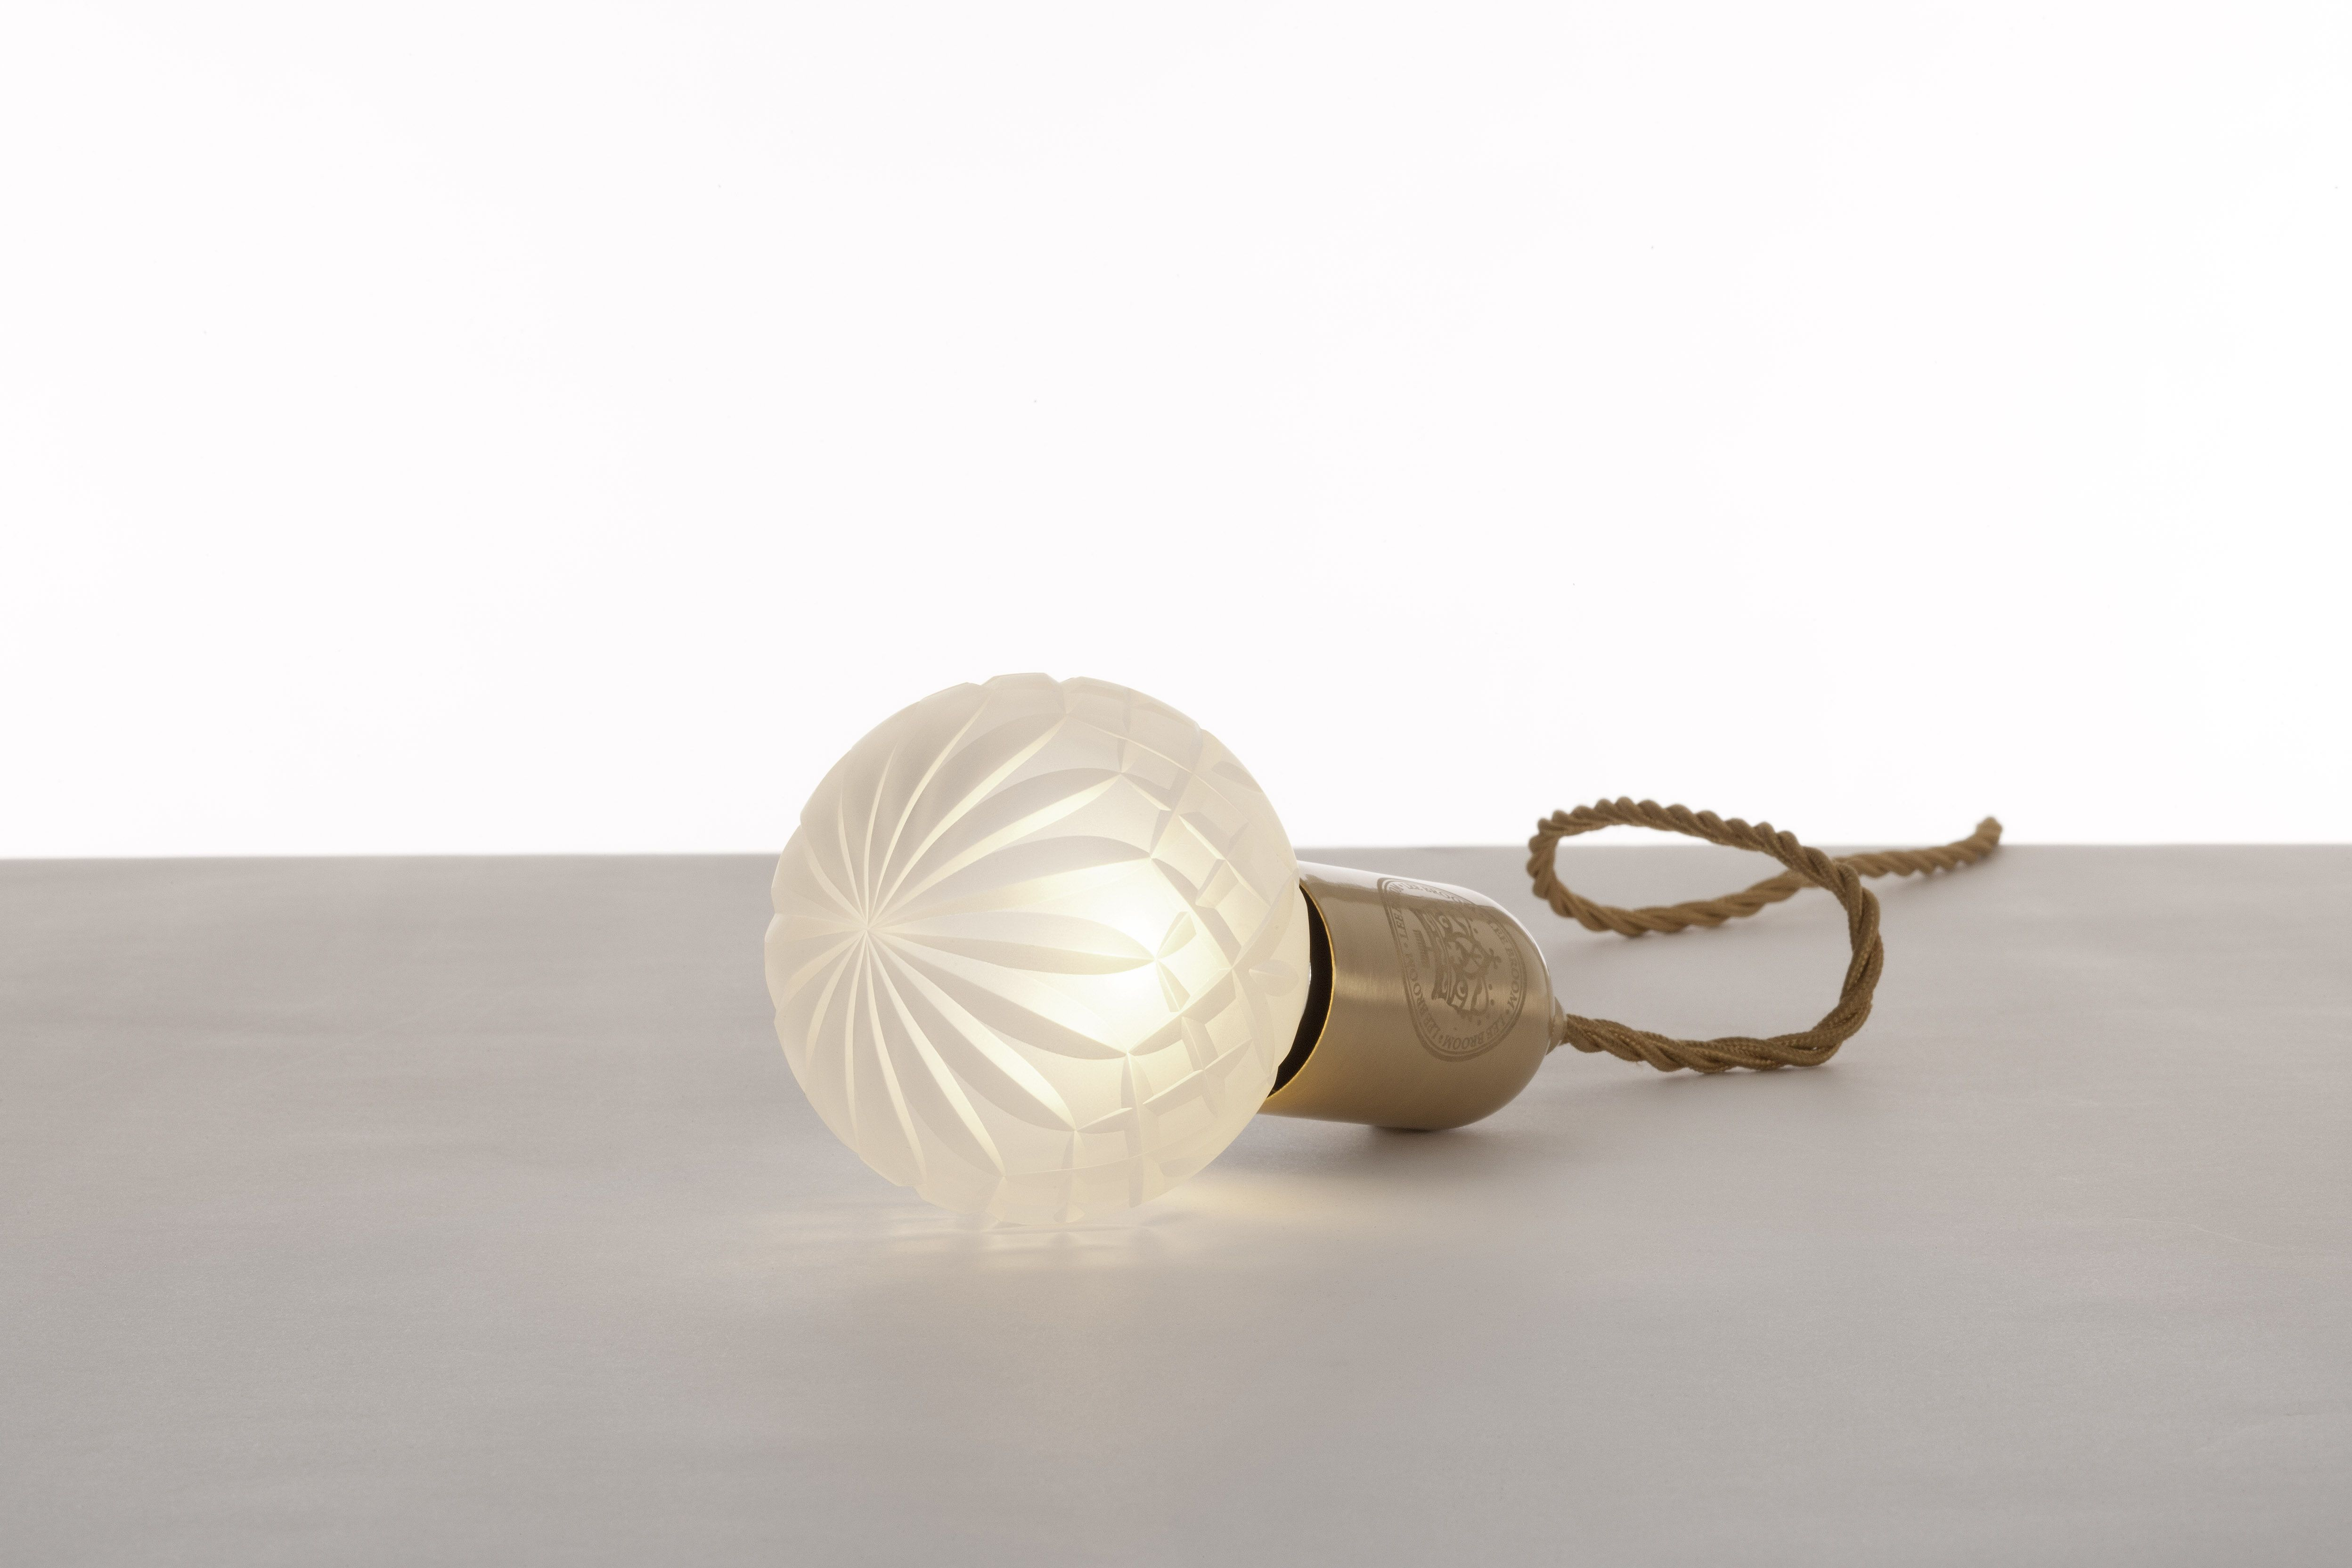 Crystal Bulb Frosted Crystal Bulb And Pendant The Brushed Brass Pendant Fitting Engraved With The Lee Broom Logo Mini Pendant Lights Mini Pendant Crystals